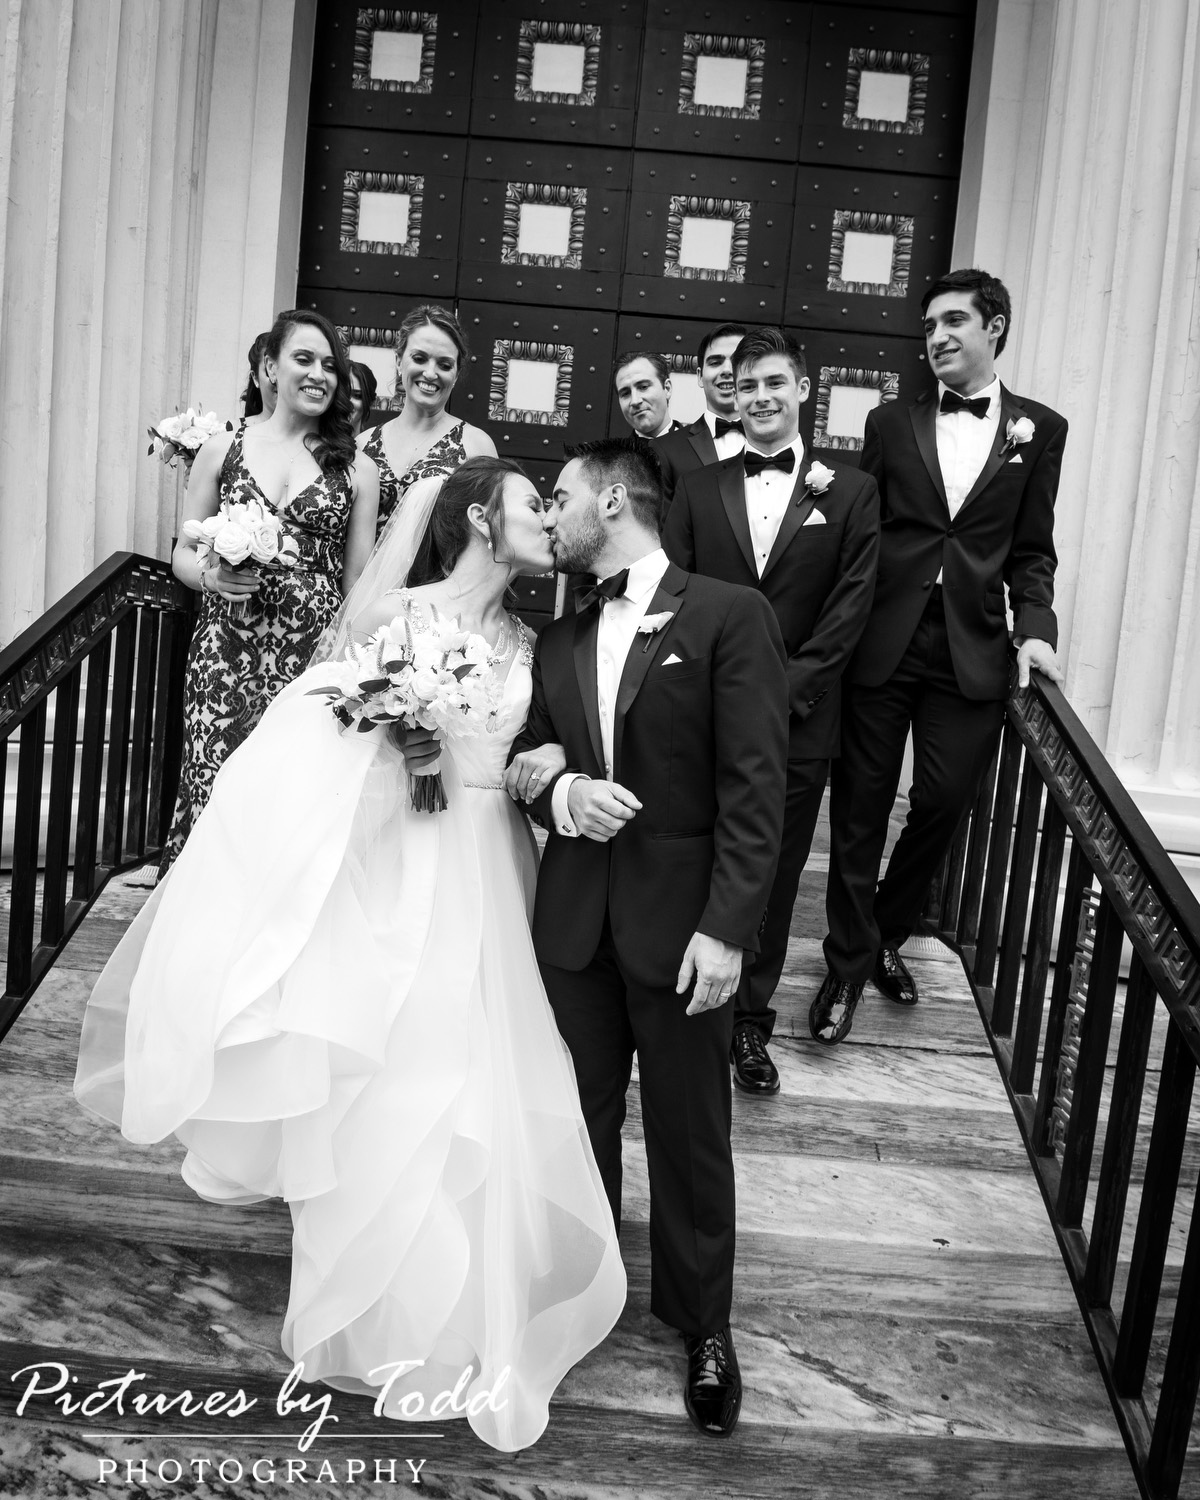 Real Greek Weddings: Pictures By Todd Photography